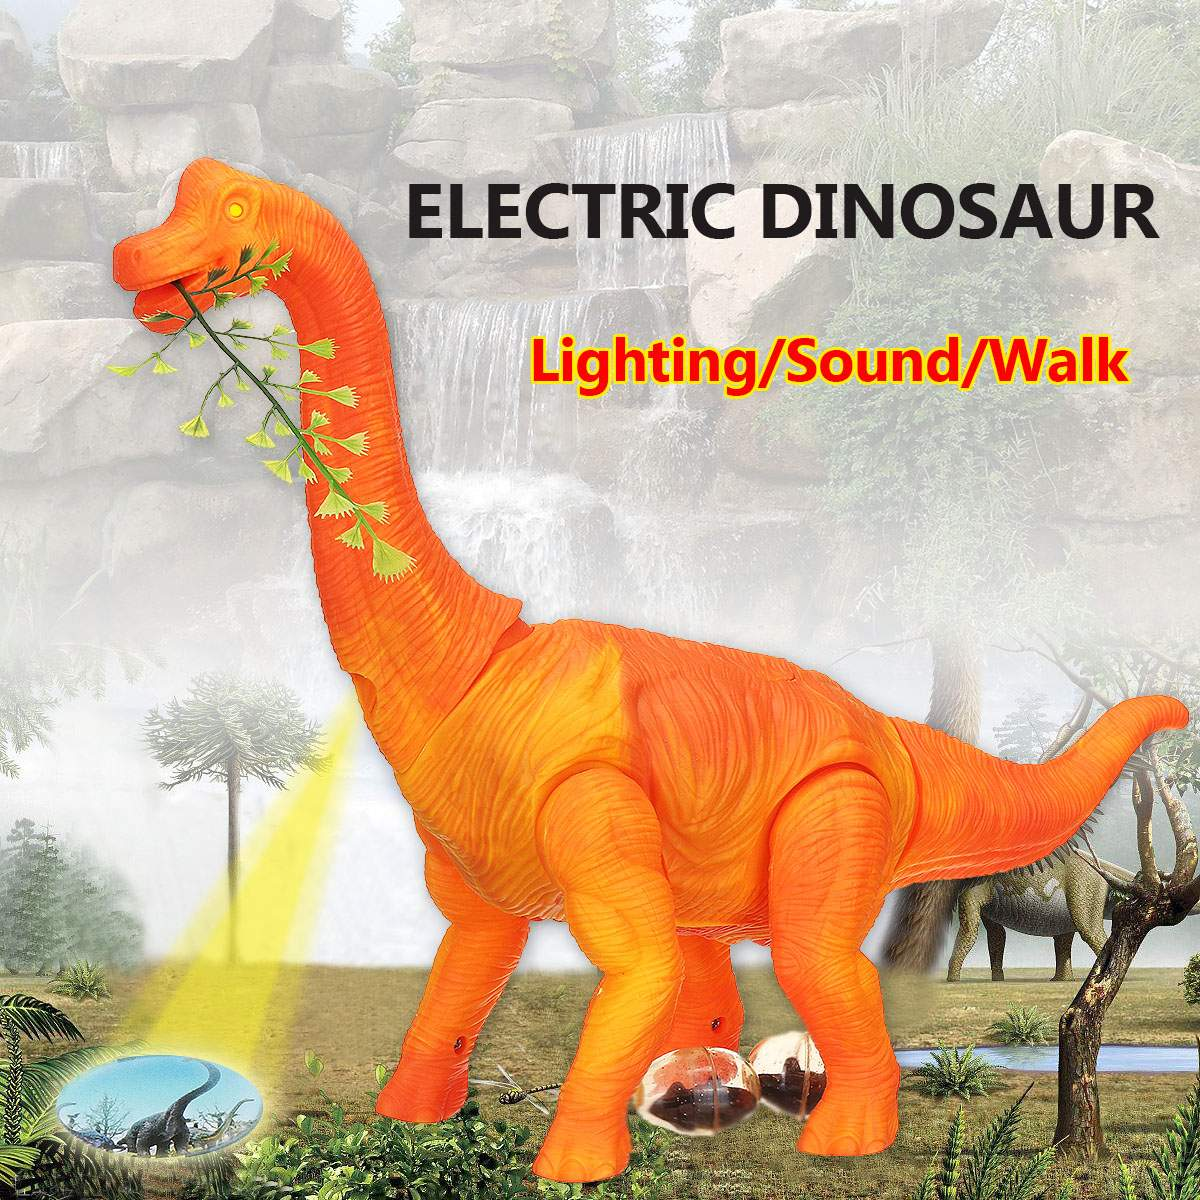 Electric Dinosaur With Light Sound Toy For Kids Walking Brachiosaurus Dinosaur Lay Eggs Function Glowing Interactive Model Toy